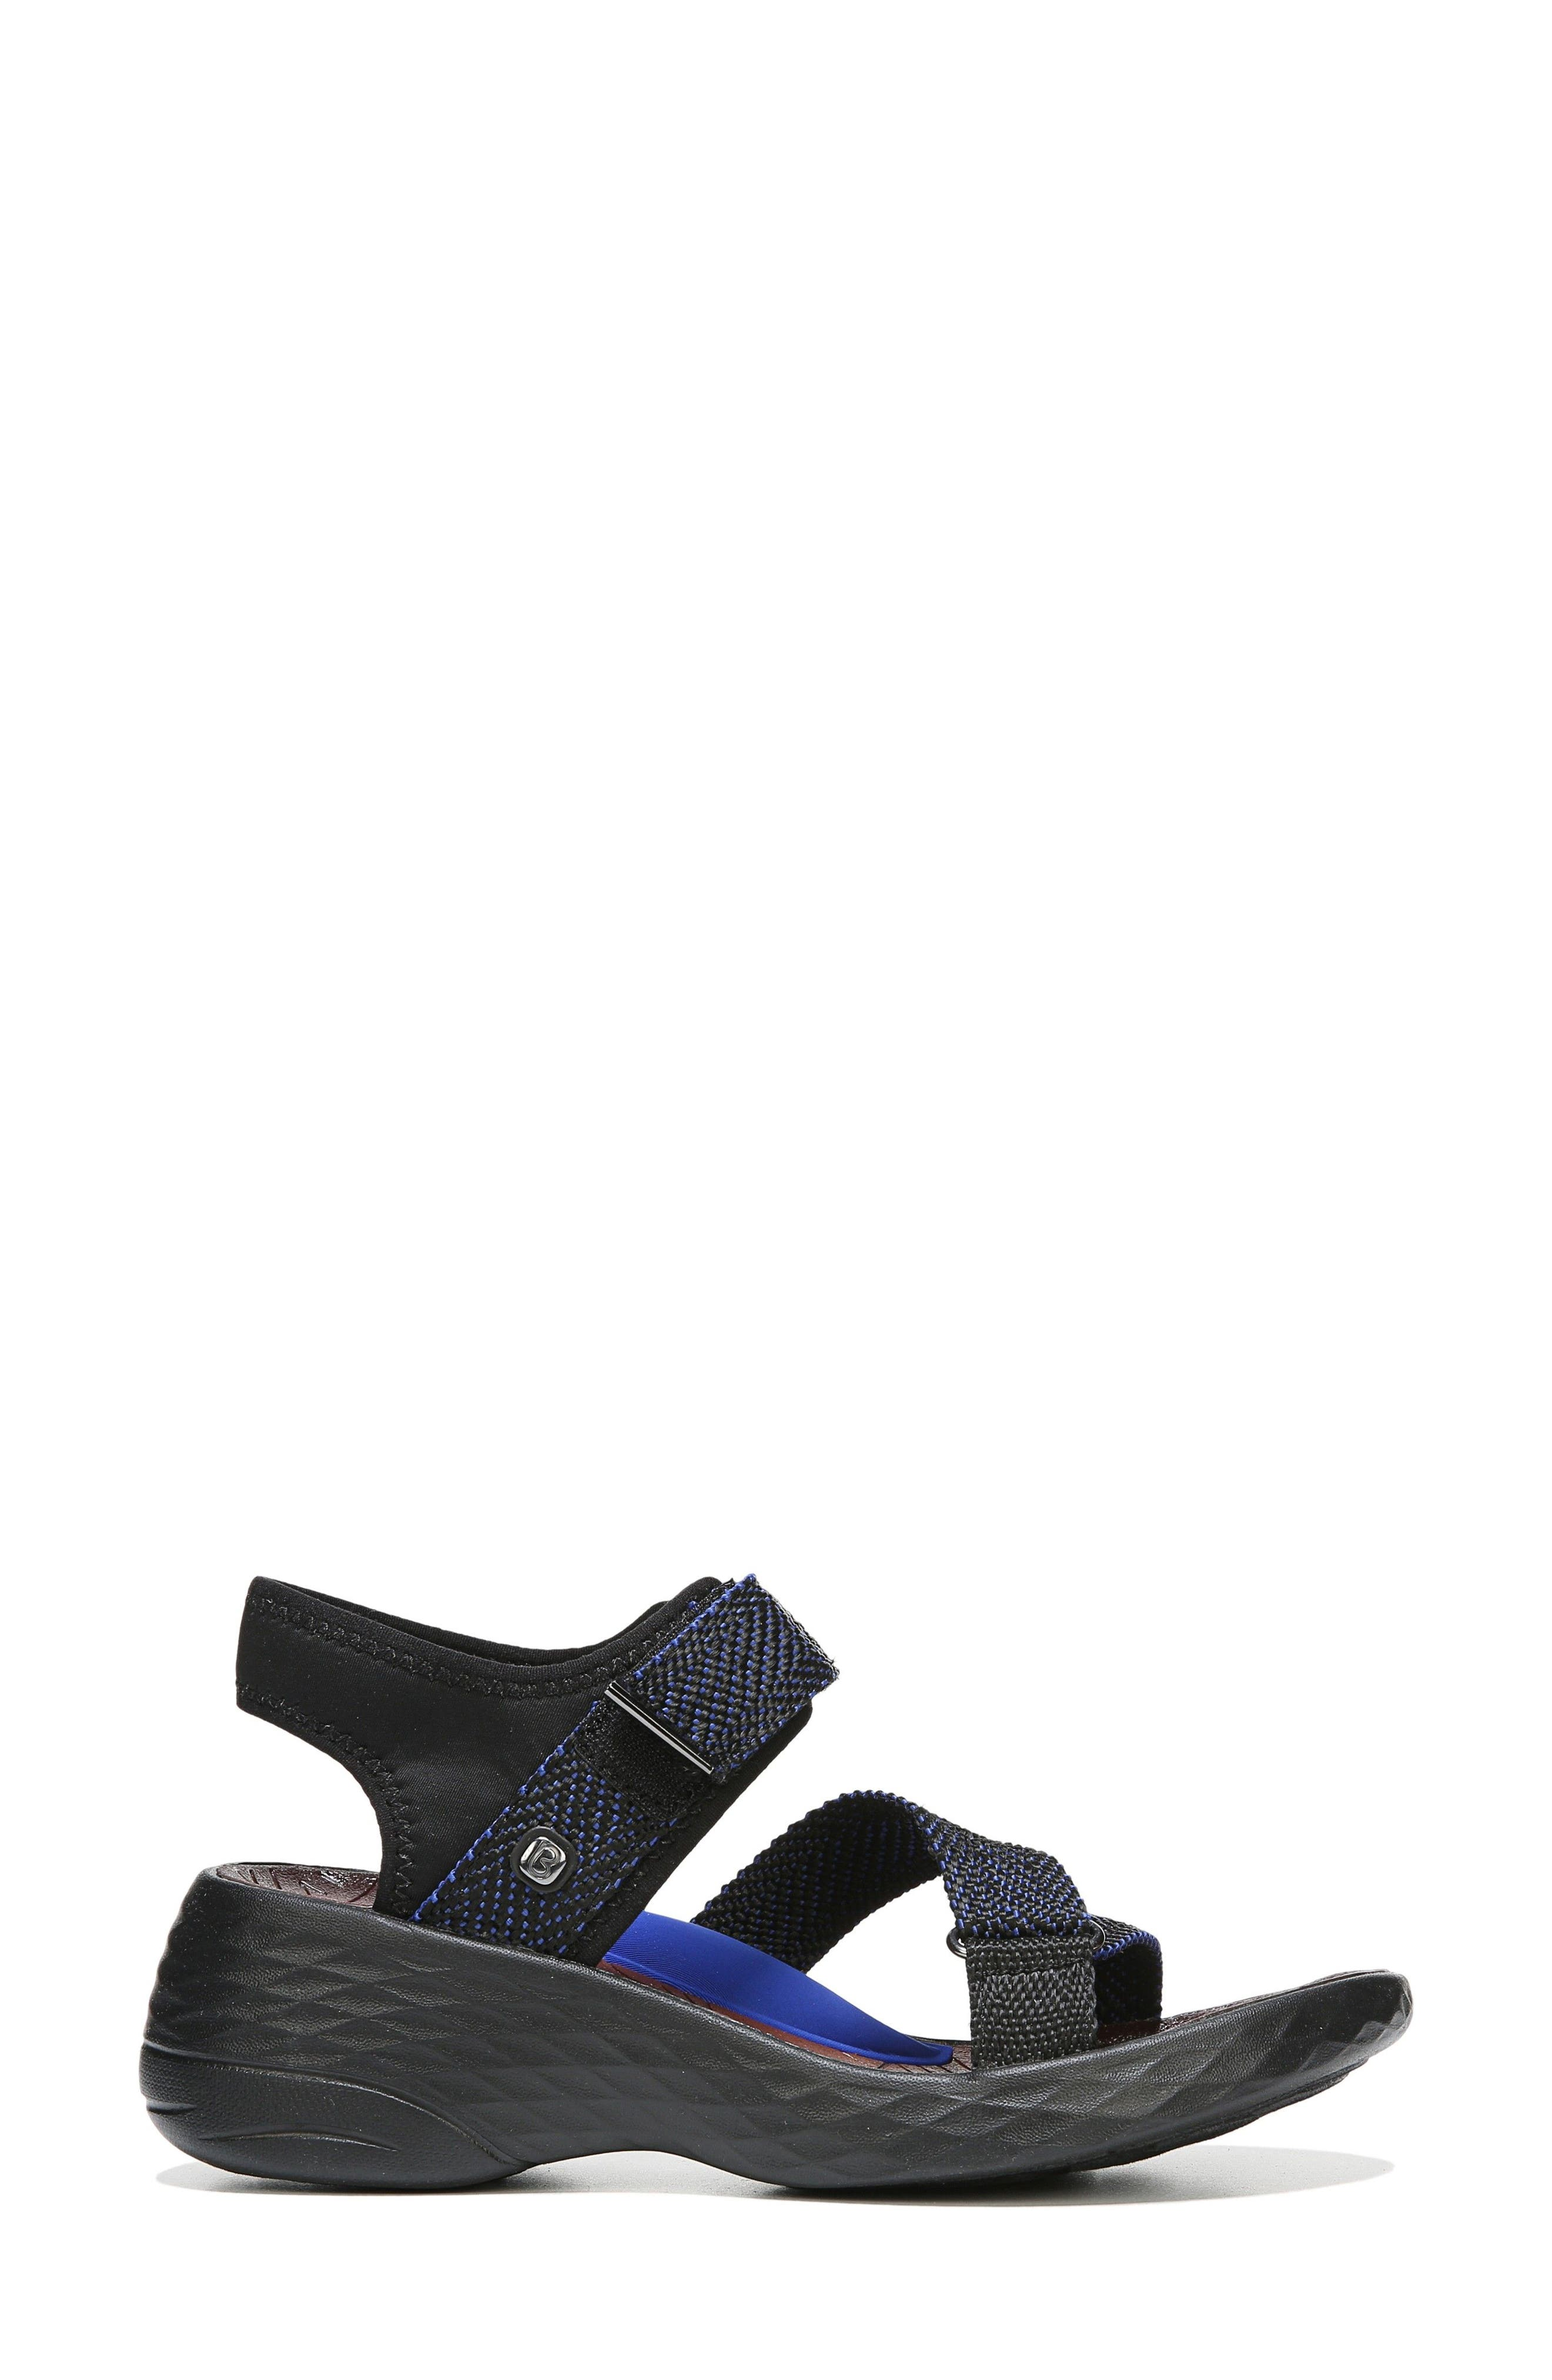 Jive Sandal,                             Alternate thumbnail 3, color,                             BLUE WEBBING FABRIC